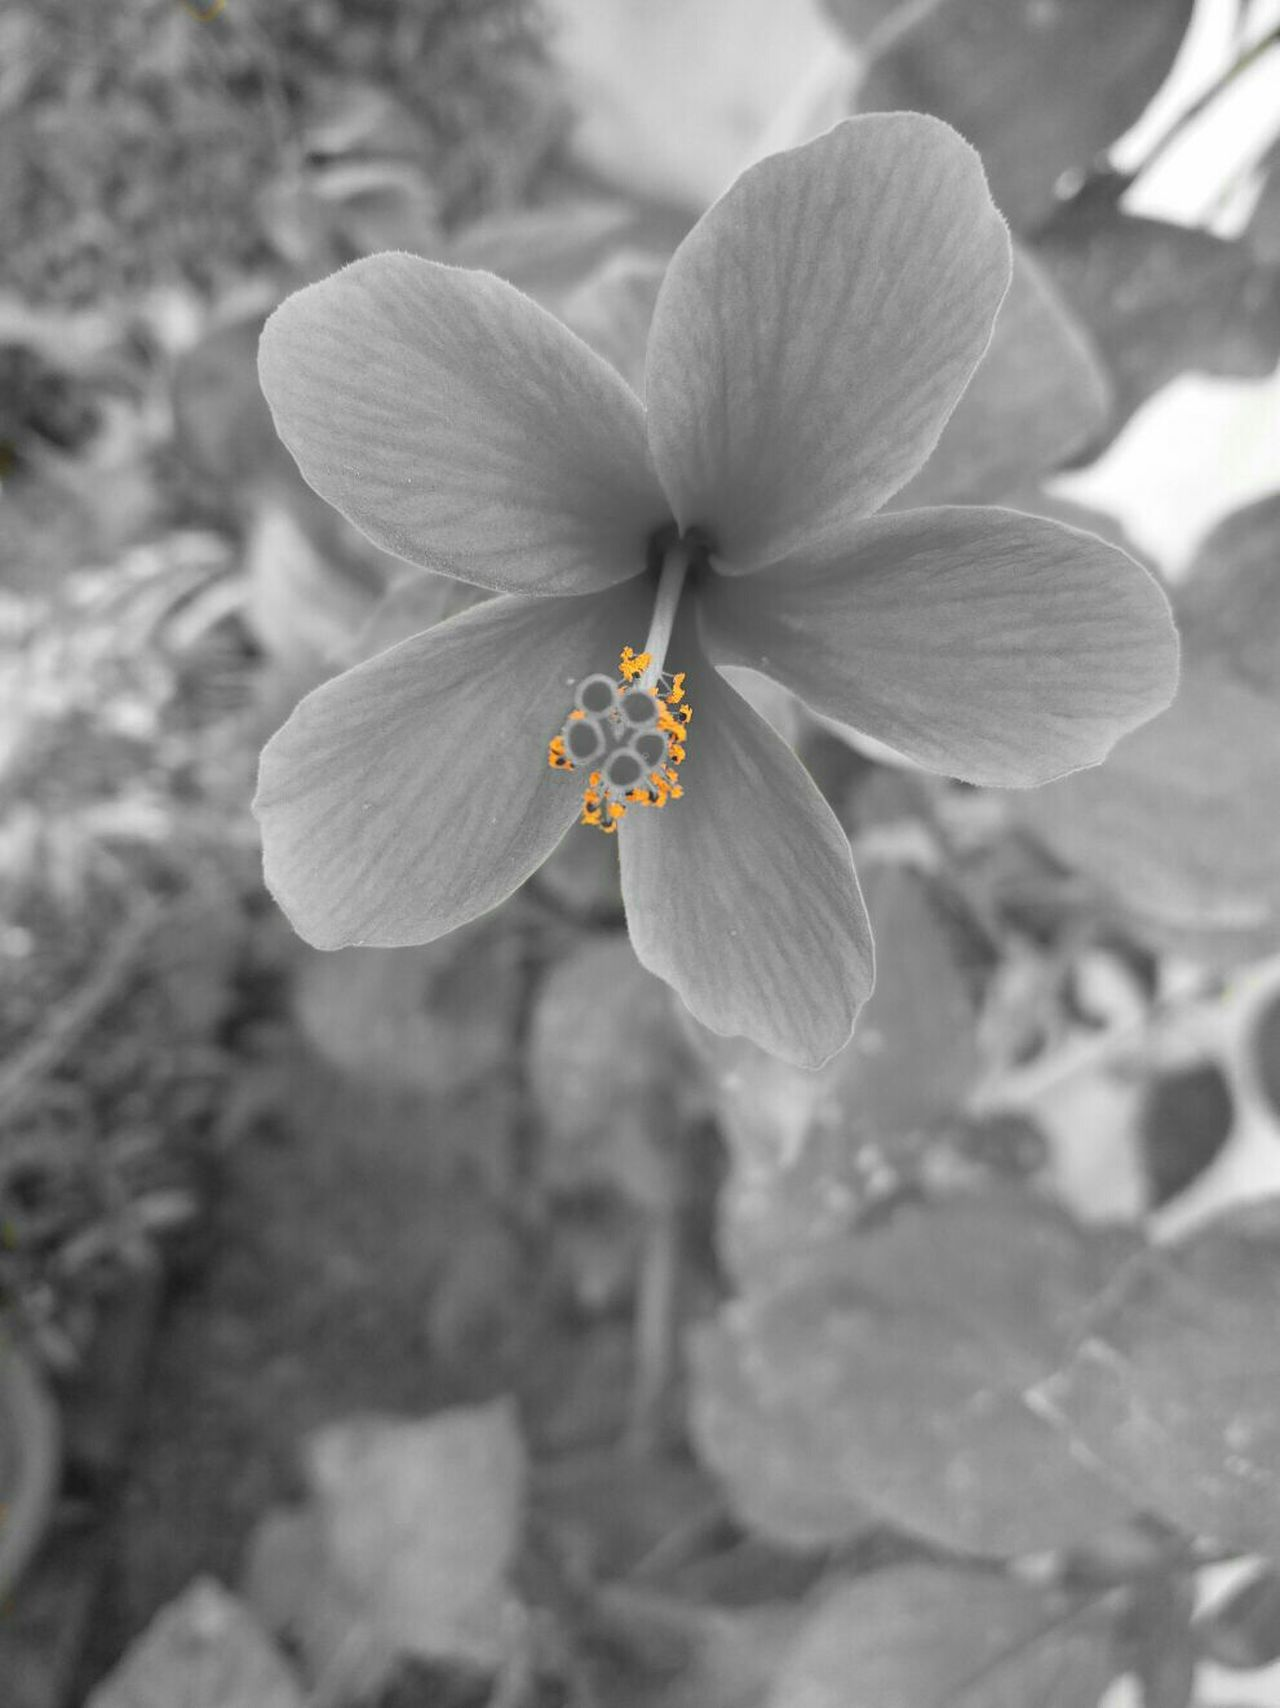 Blackandwhite Colorsplash My Best Photo 2015 Black And White Monochrome Black&white Flowers Flowerporn Flower Bnw Flower Collection Black & White Aiiko Inspired Aiikos Black.n.white